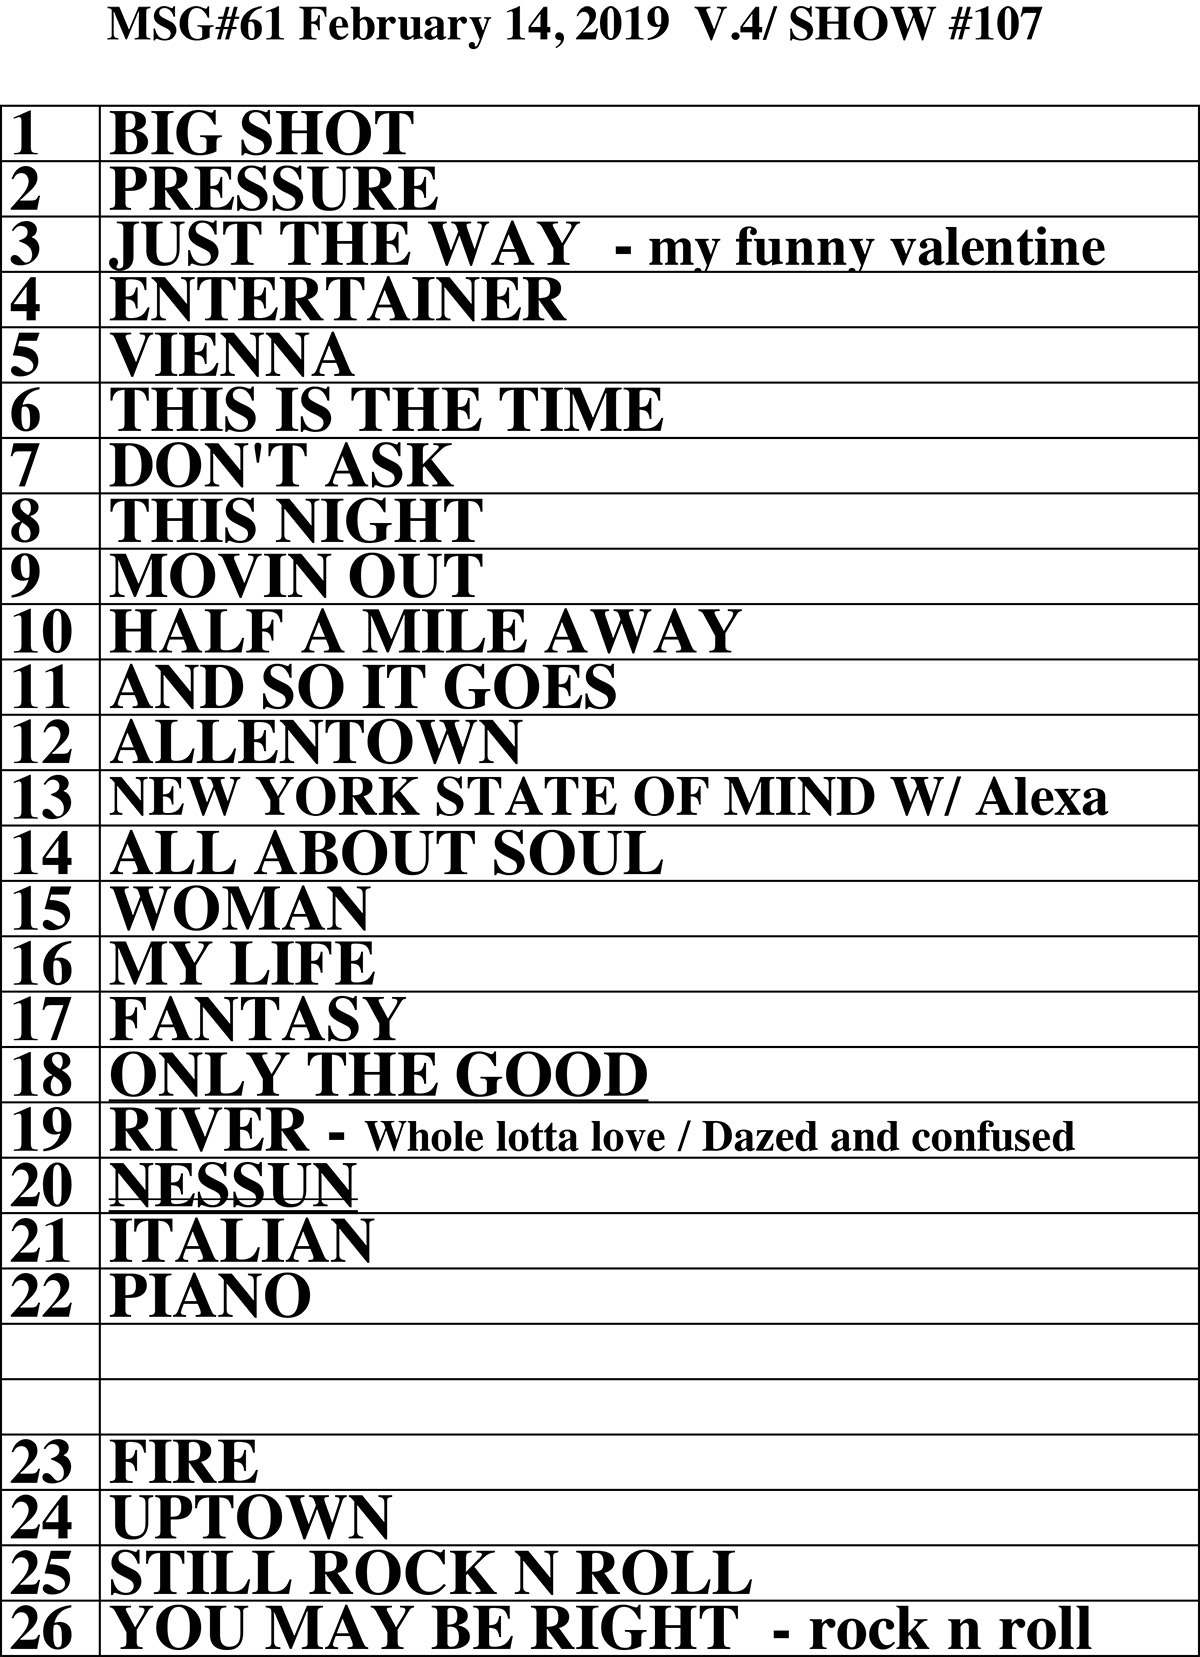 Set list from Billy Joel concert Madison Square Garden New York, NY, February 14, 2019